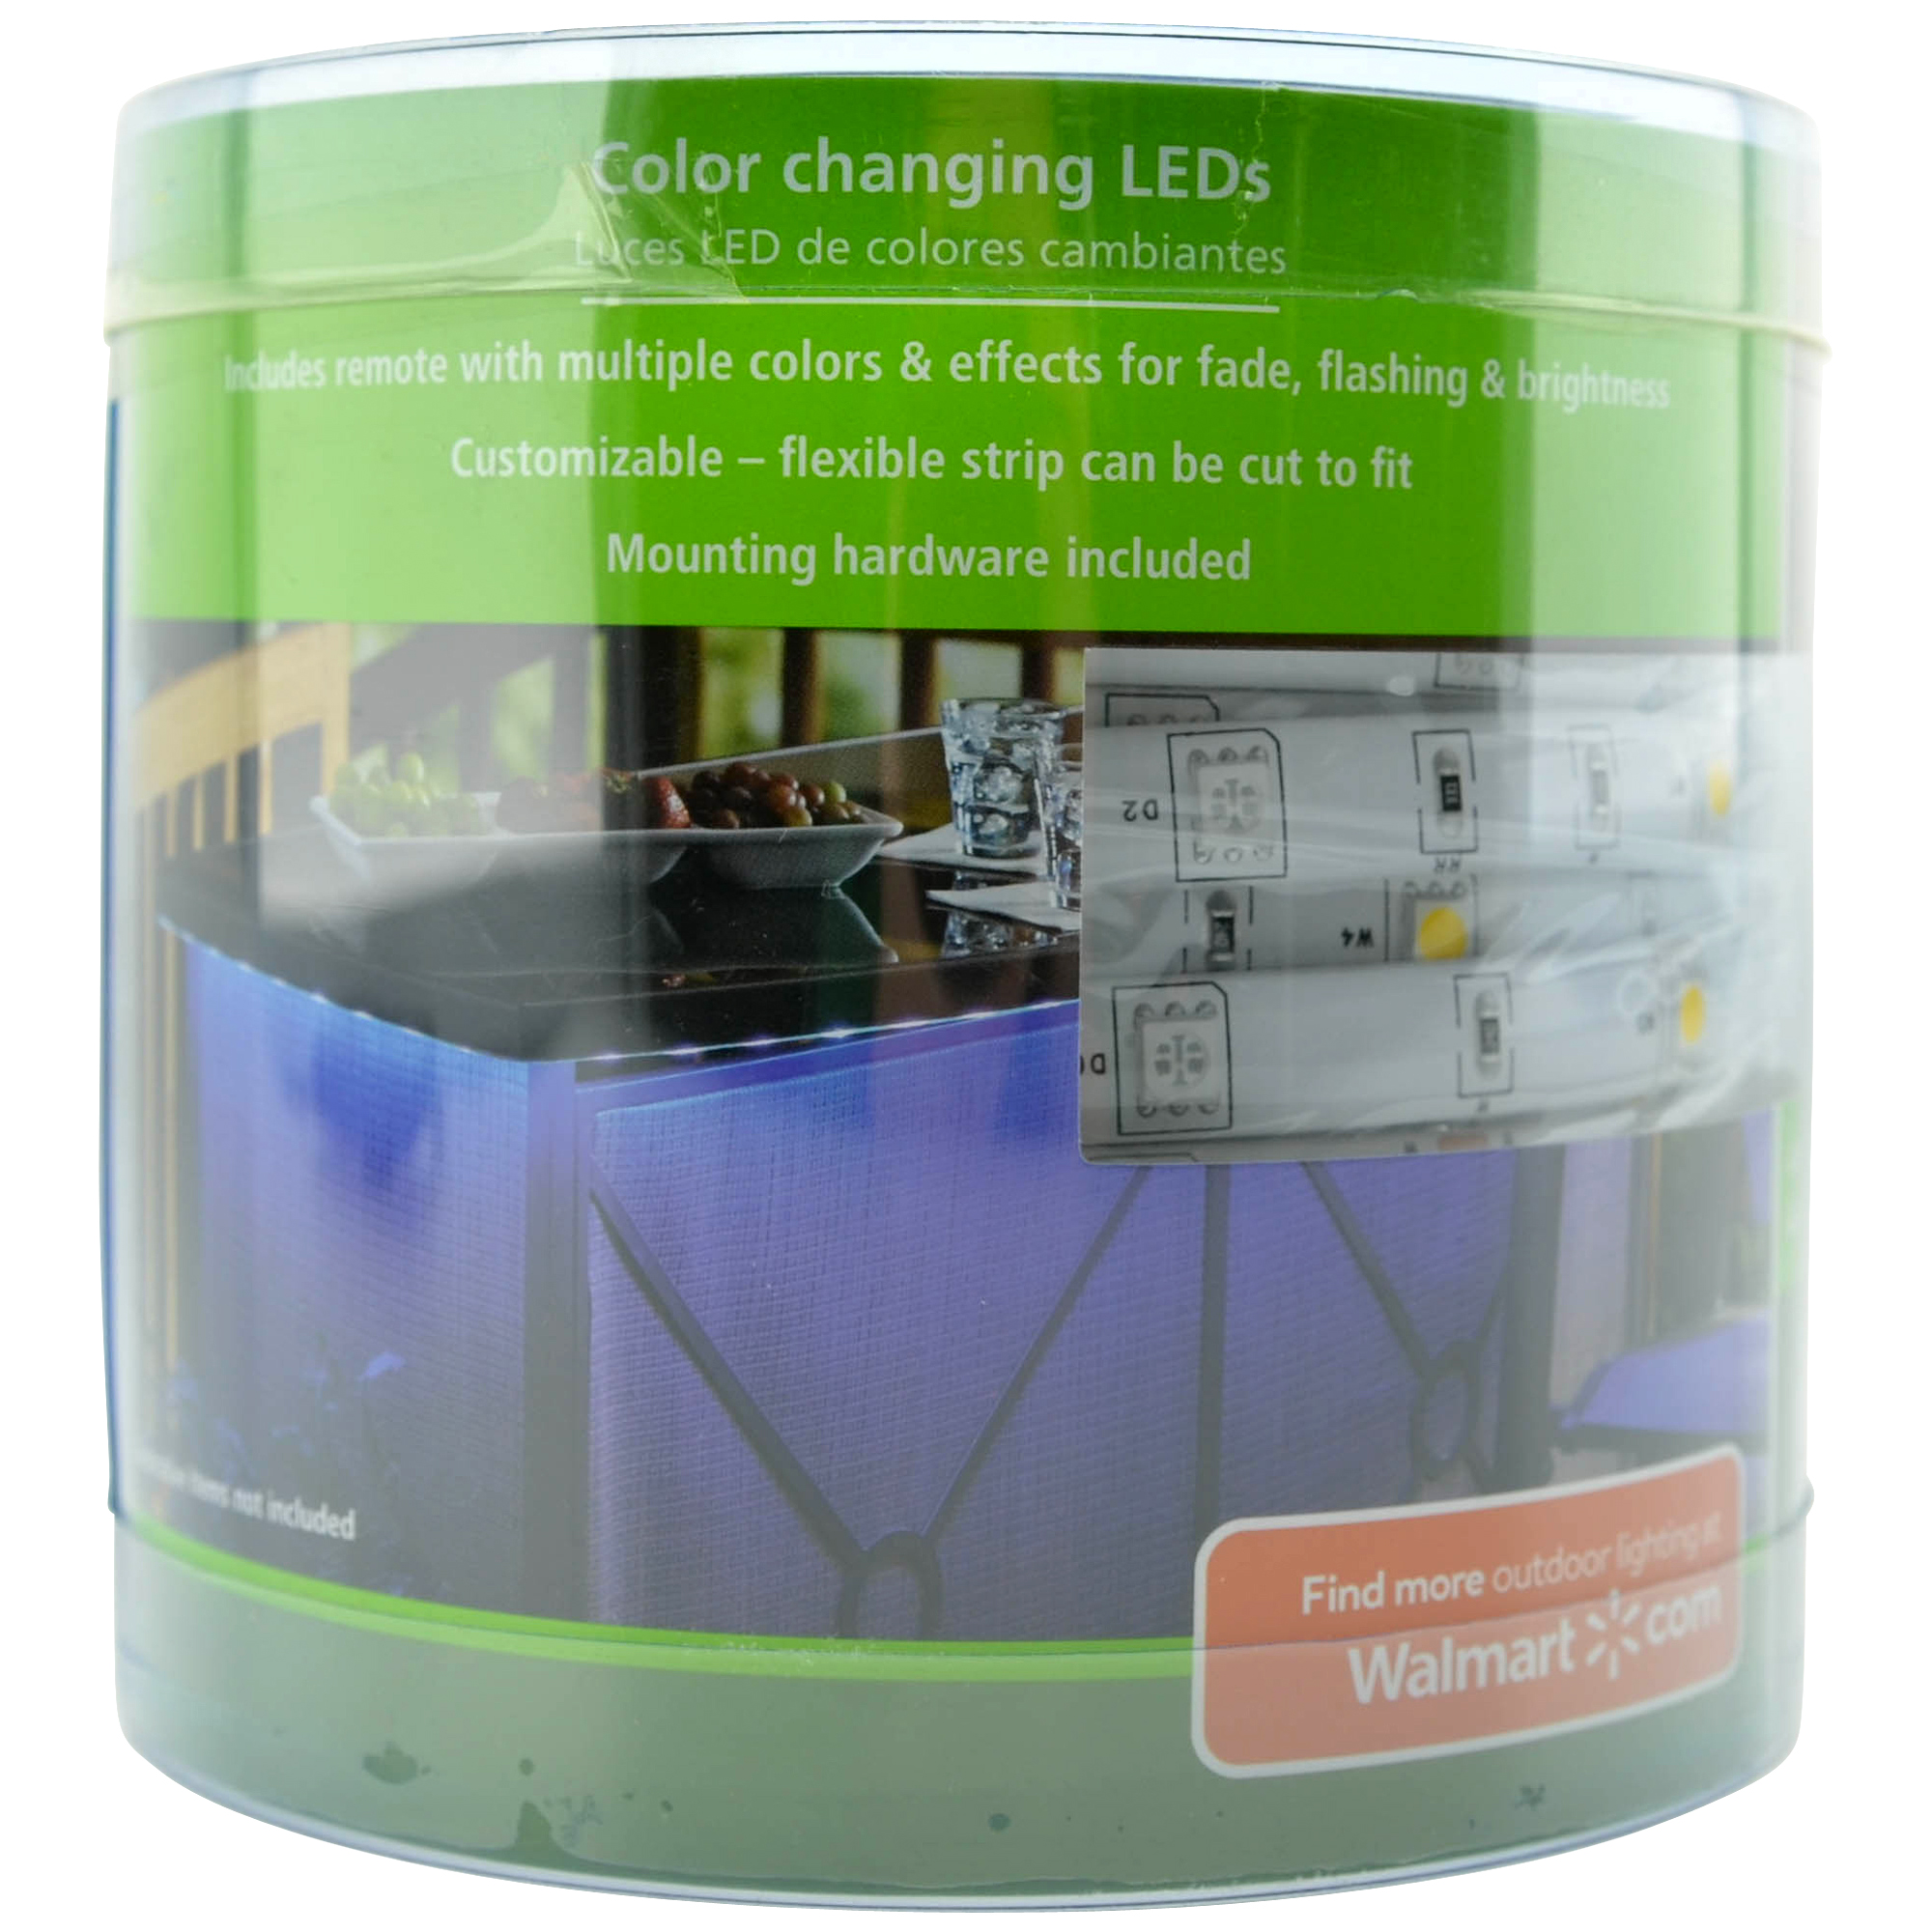 Mainstays Color Changing LED Tape Light with Remote